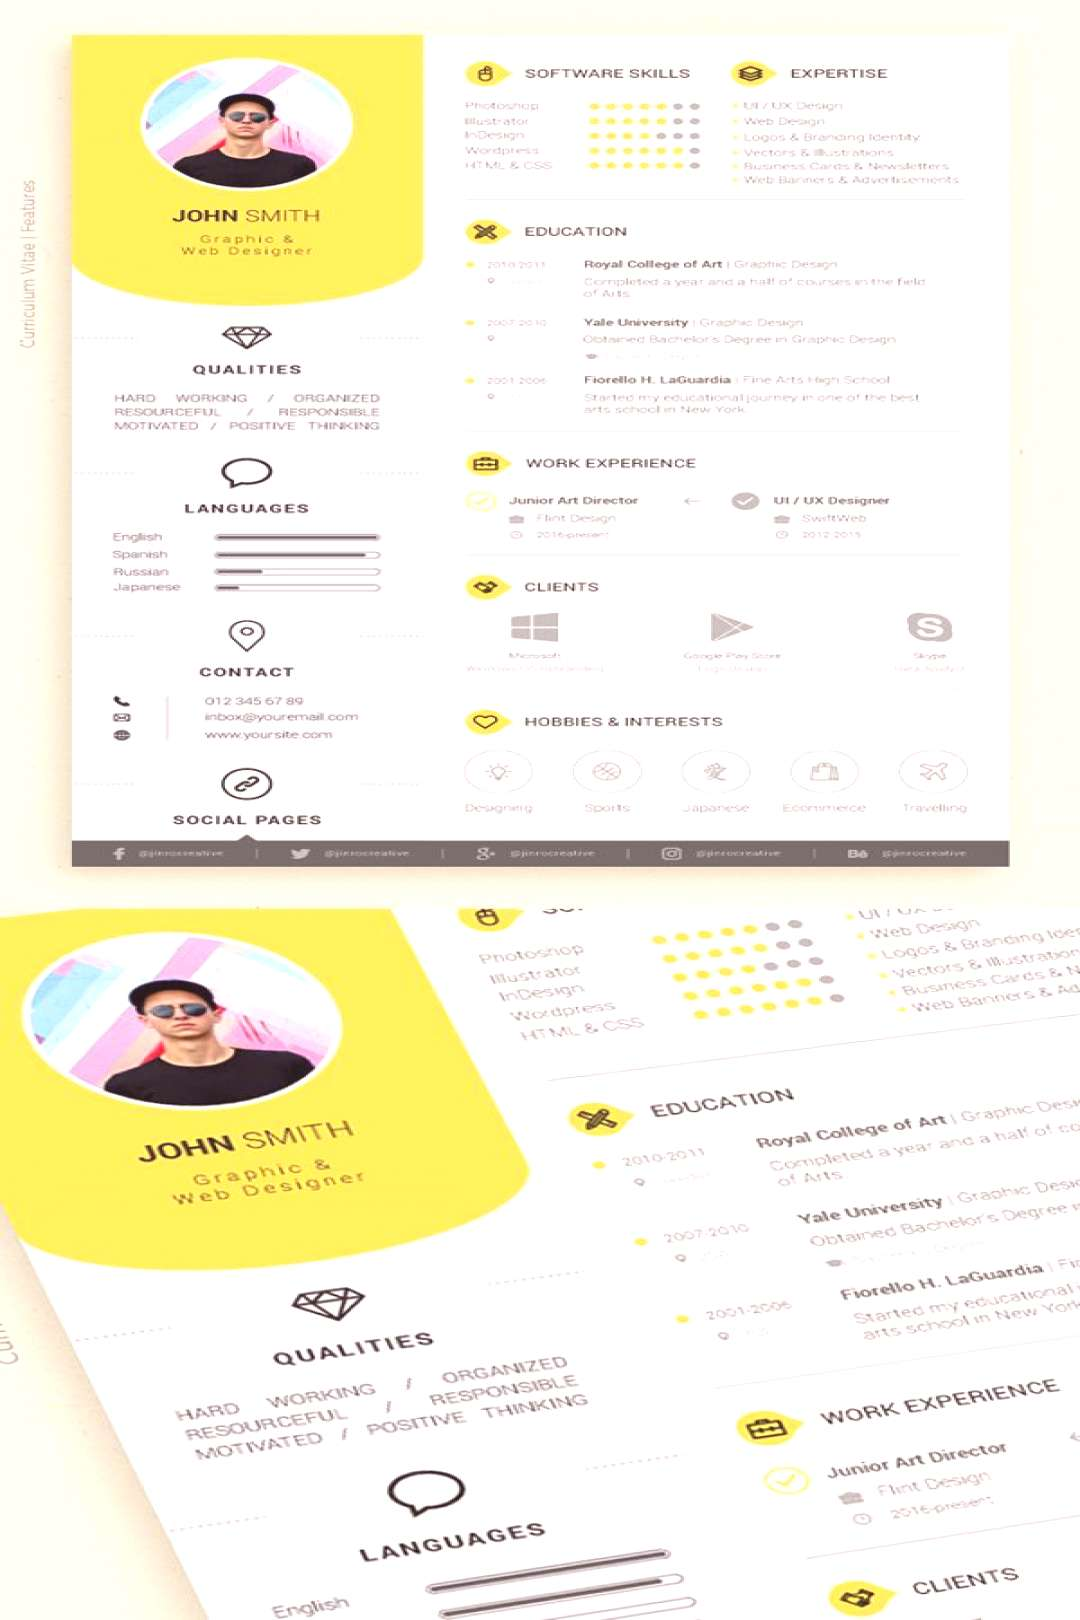 50 Free Resume Templates: Best Of 2018 -  33. resume template for word, resume idea, pretty resume,